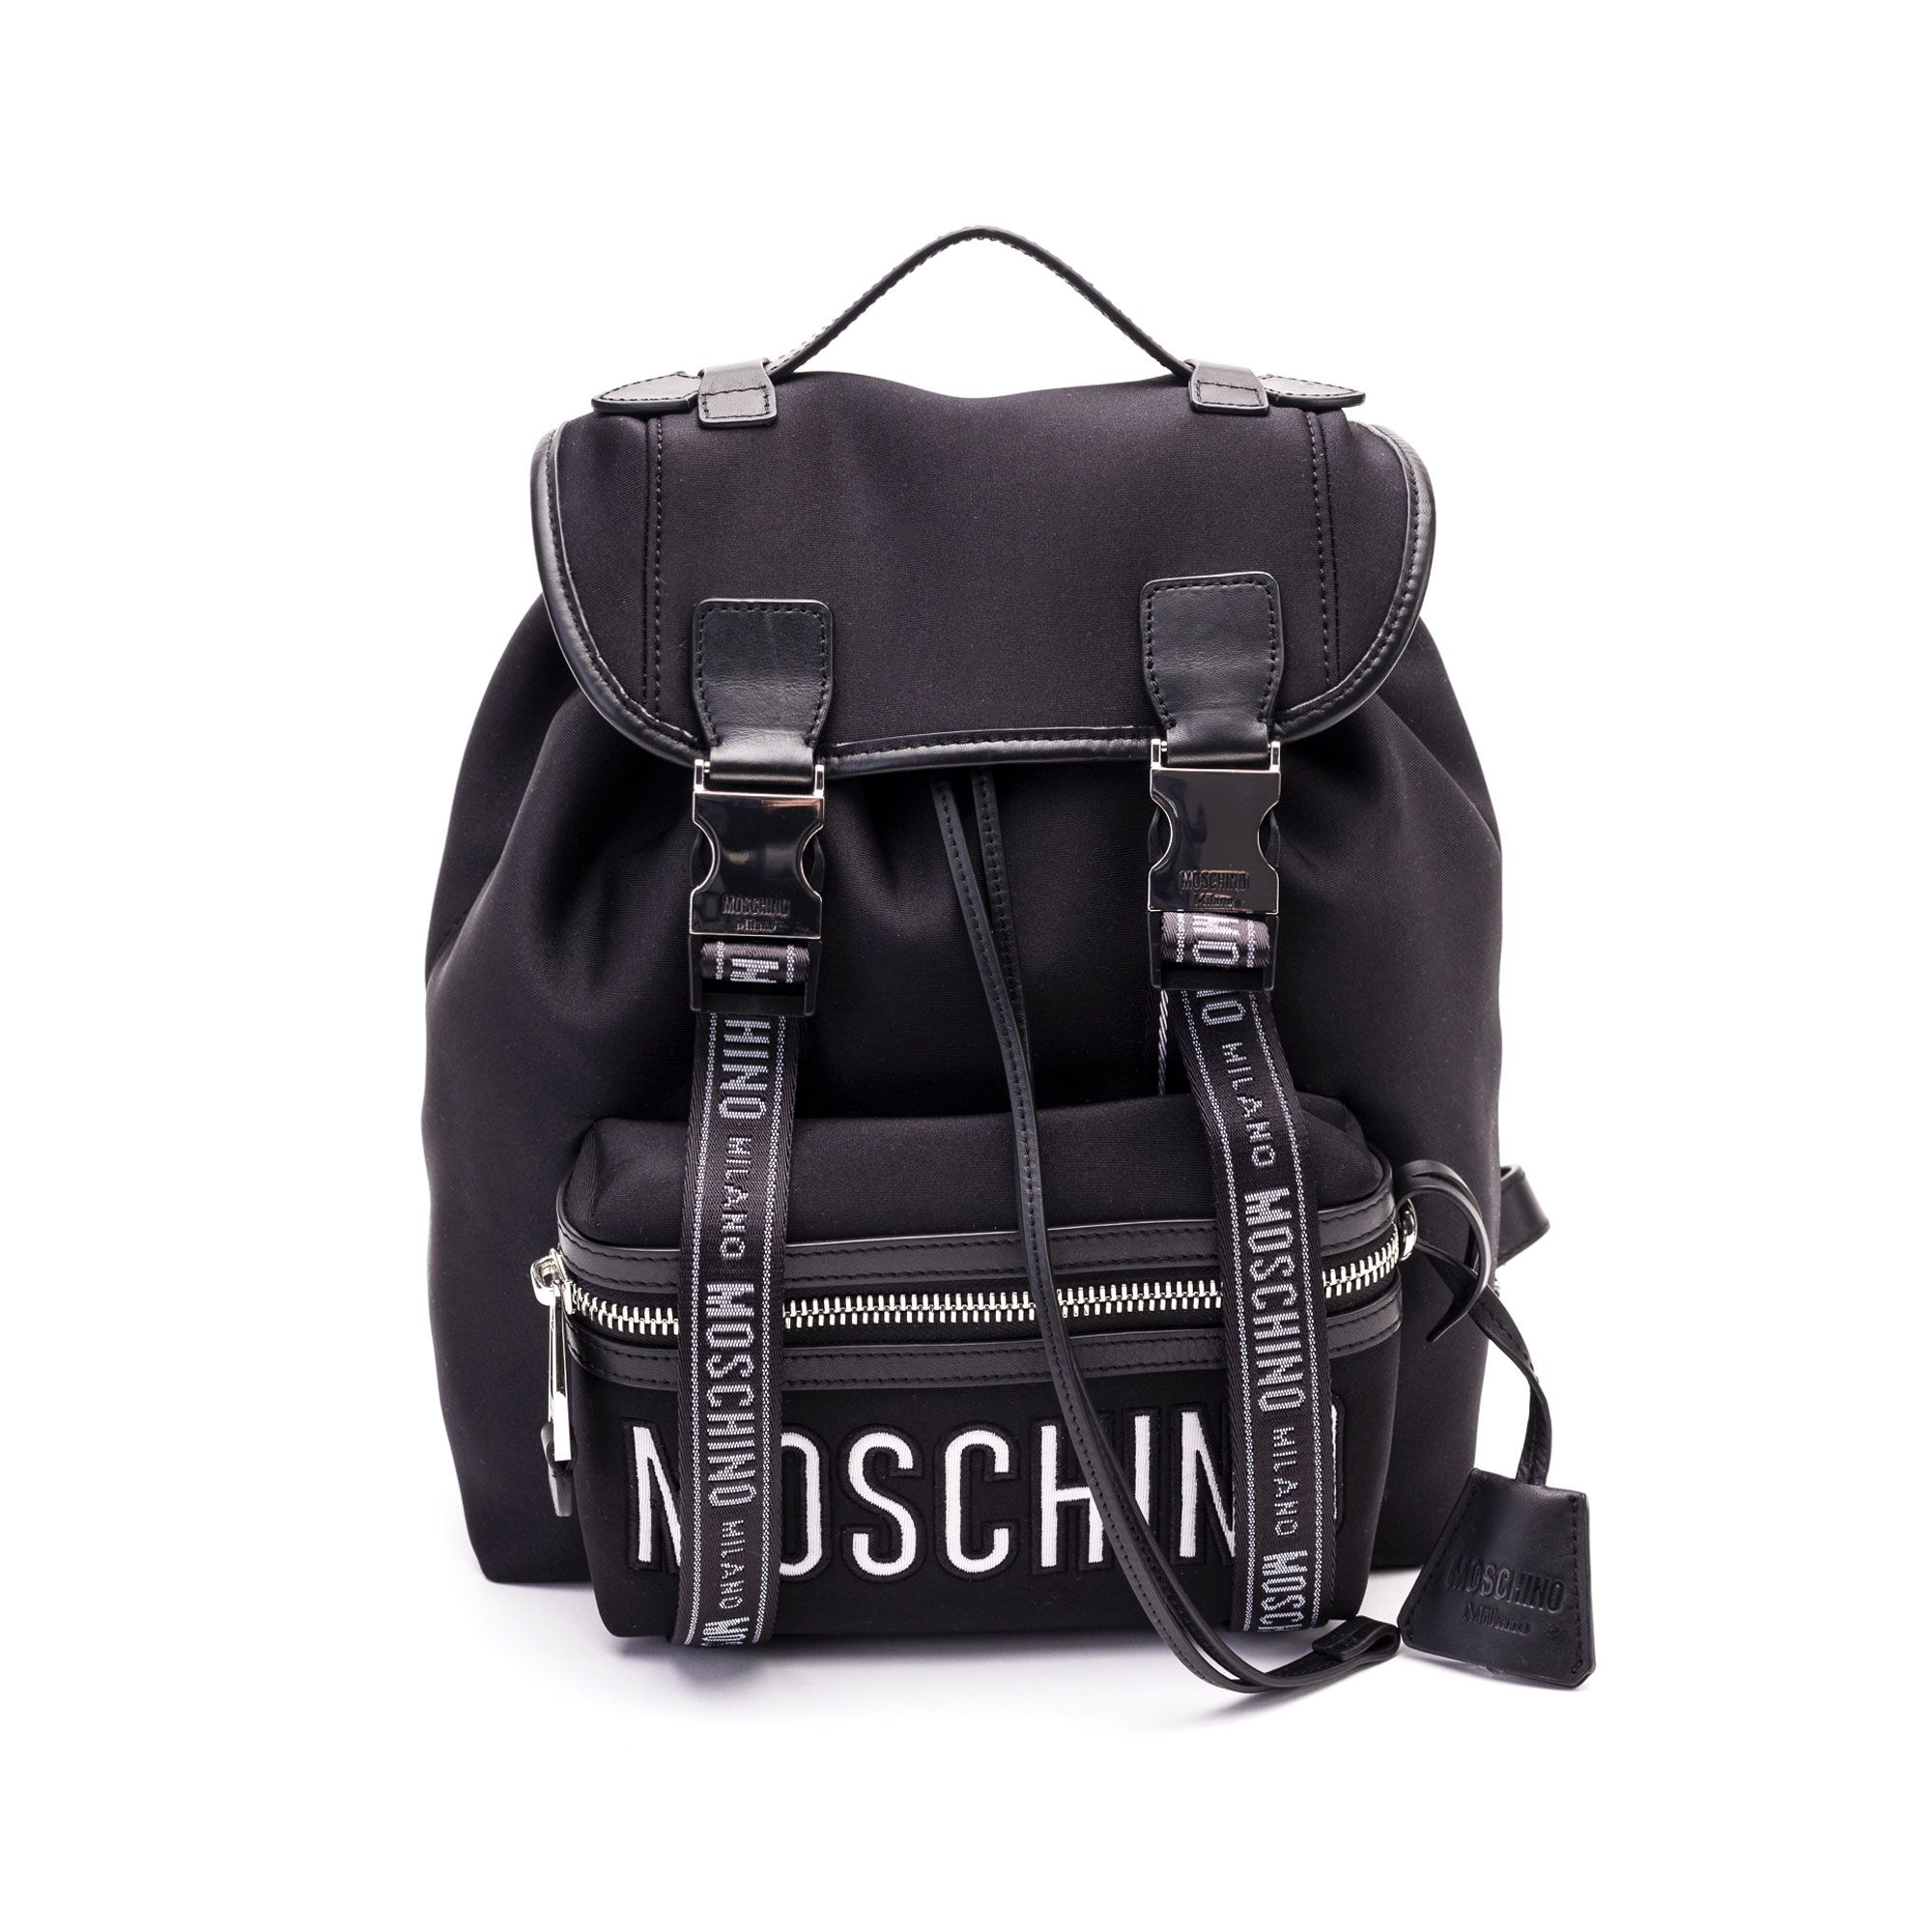 Moschino Black Leather Backpack